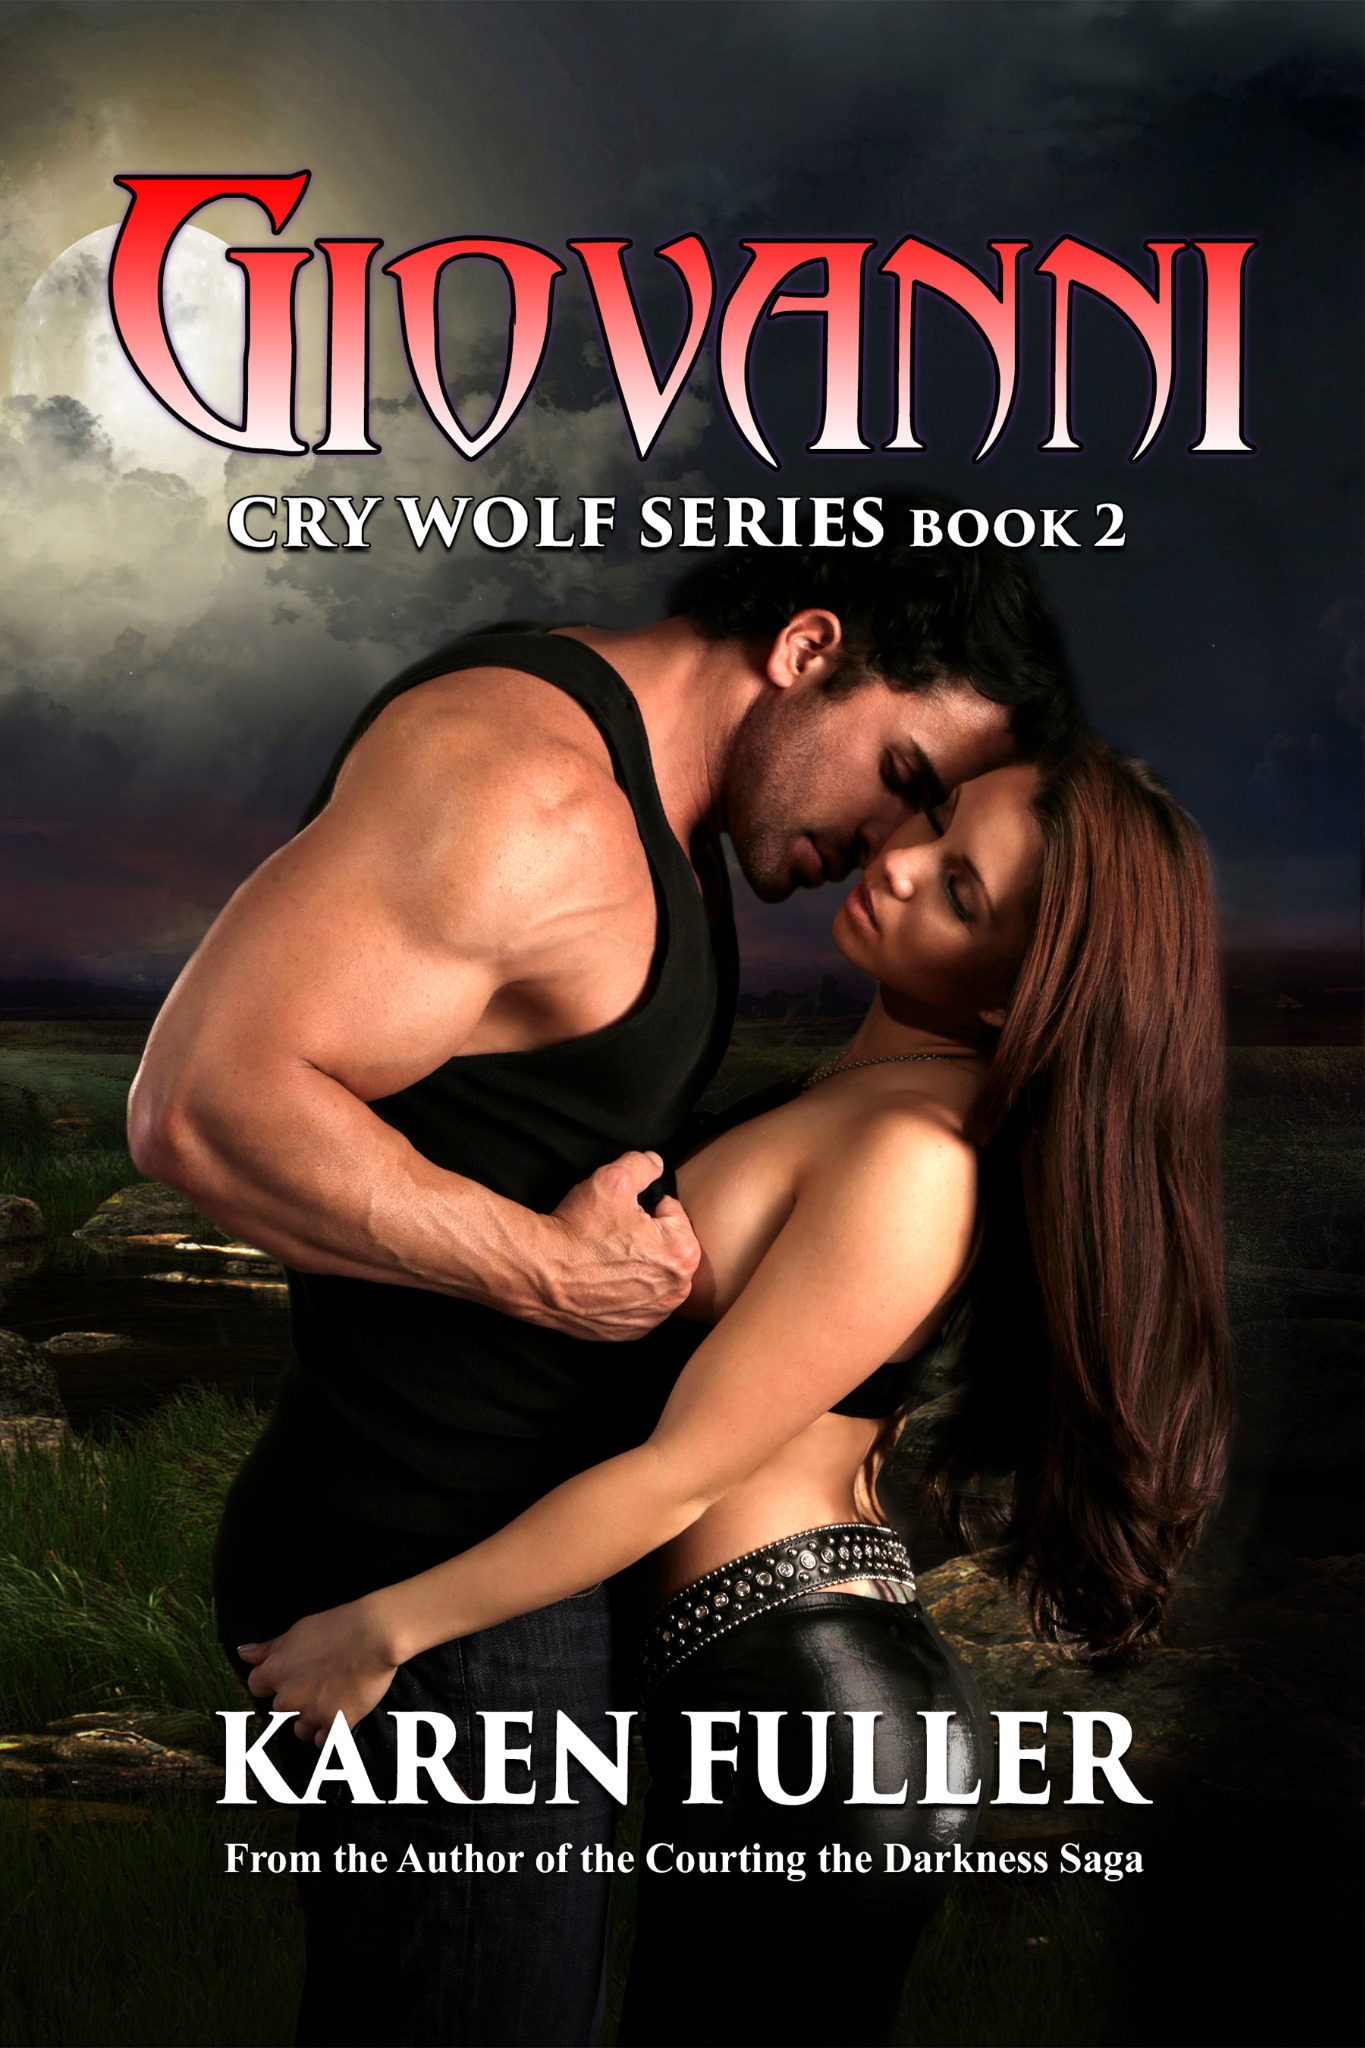 Giovanni - Cry Wolf Series Book 2